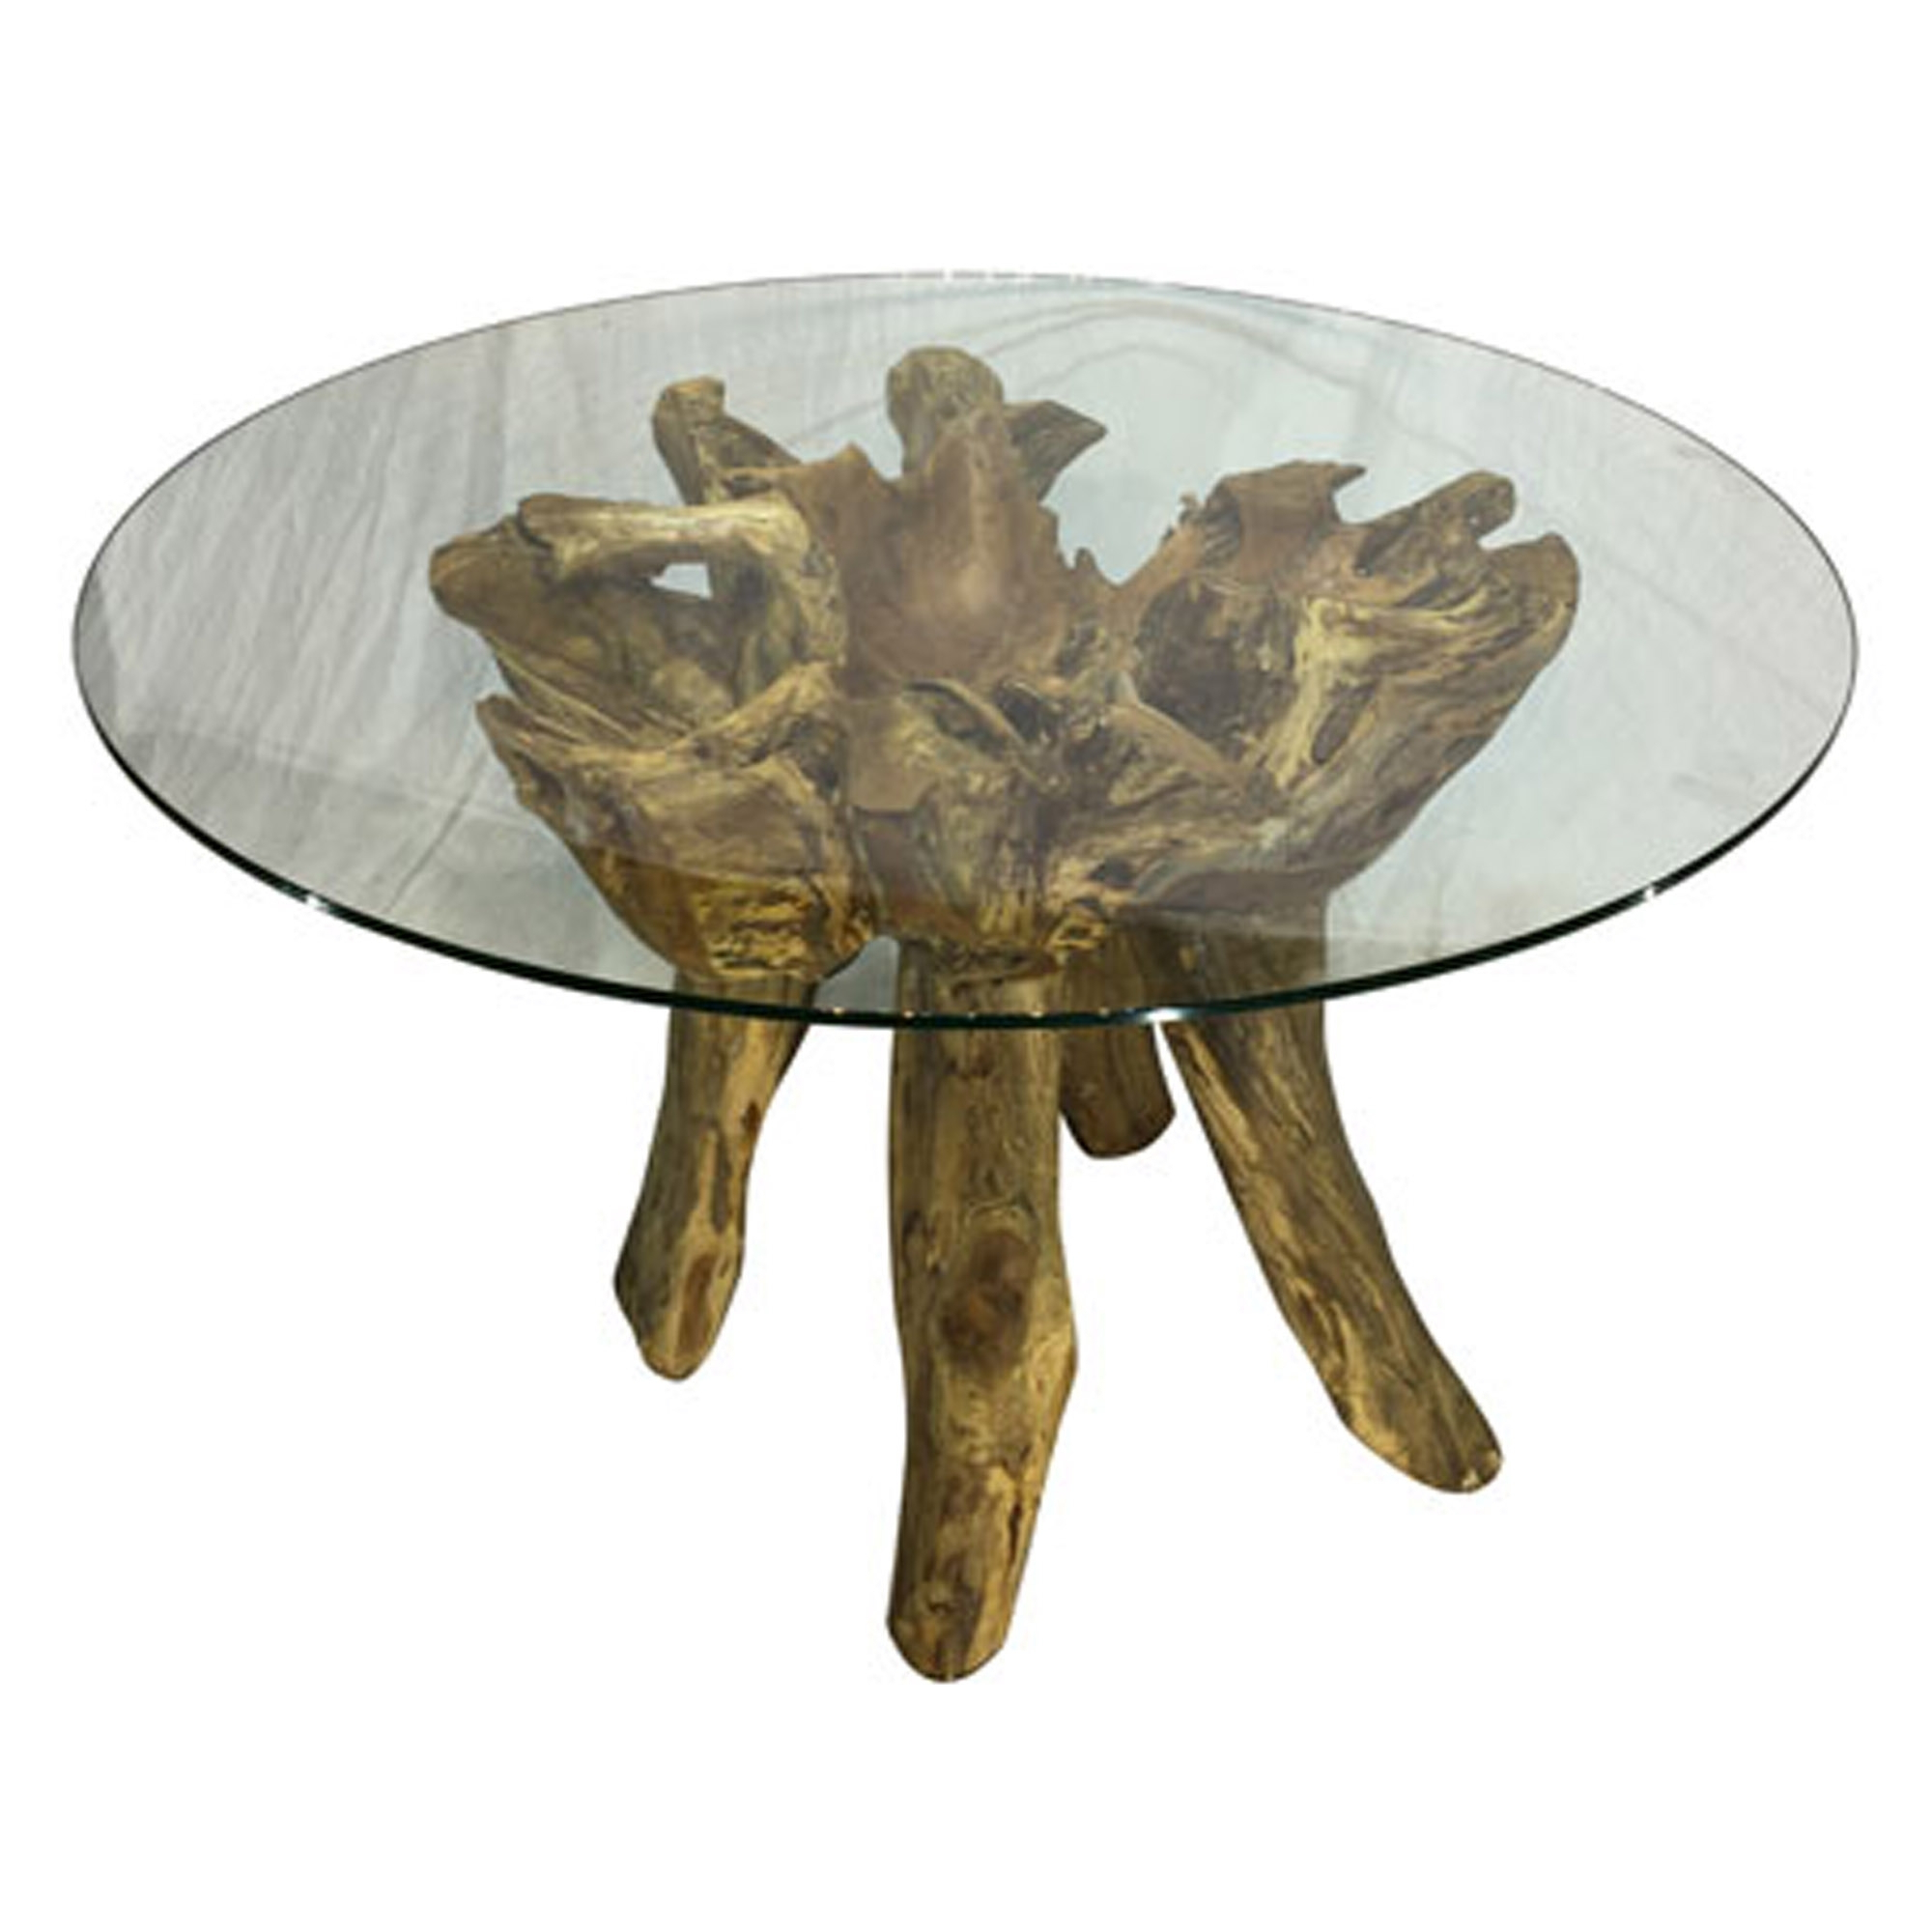 Teak Root Round Glass Dining Table Small Regarding Popular Small Rustic Look Dining Tables (View 16 of 30)